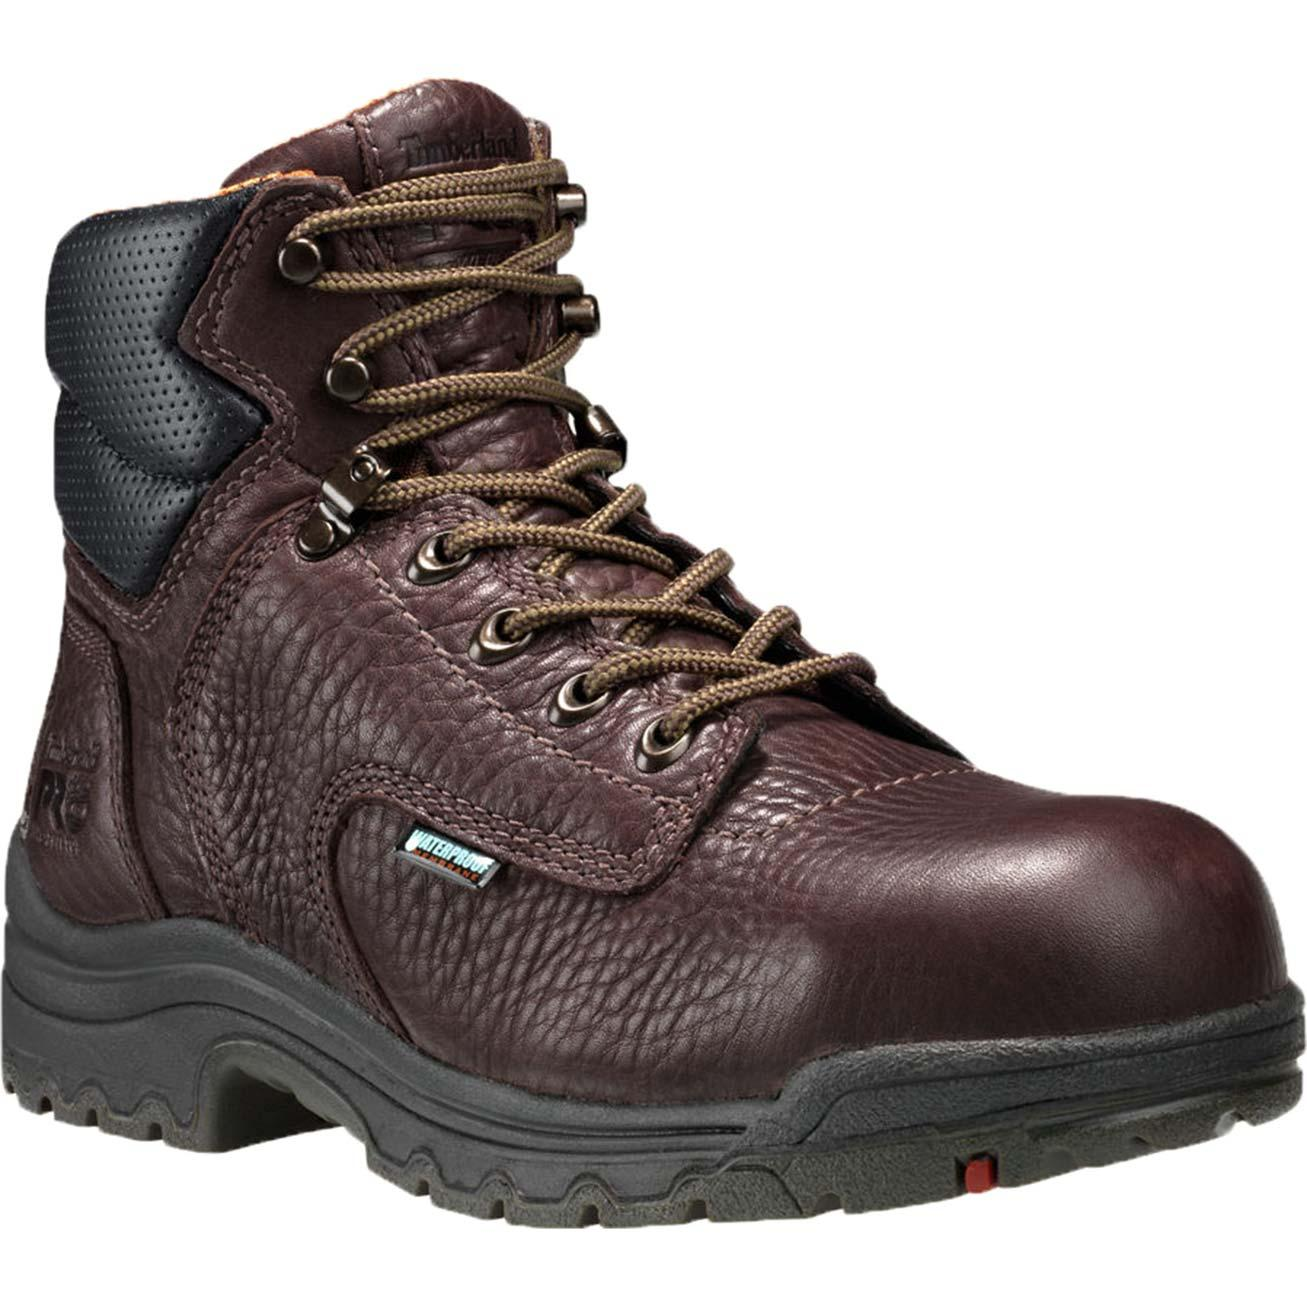 Timberland Pro 174 Women S Protective Toe Waterproof Work